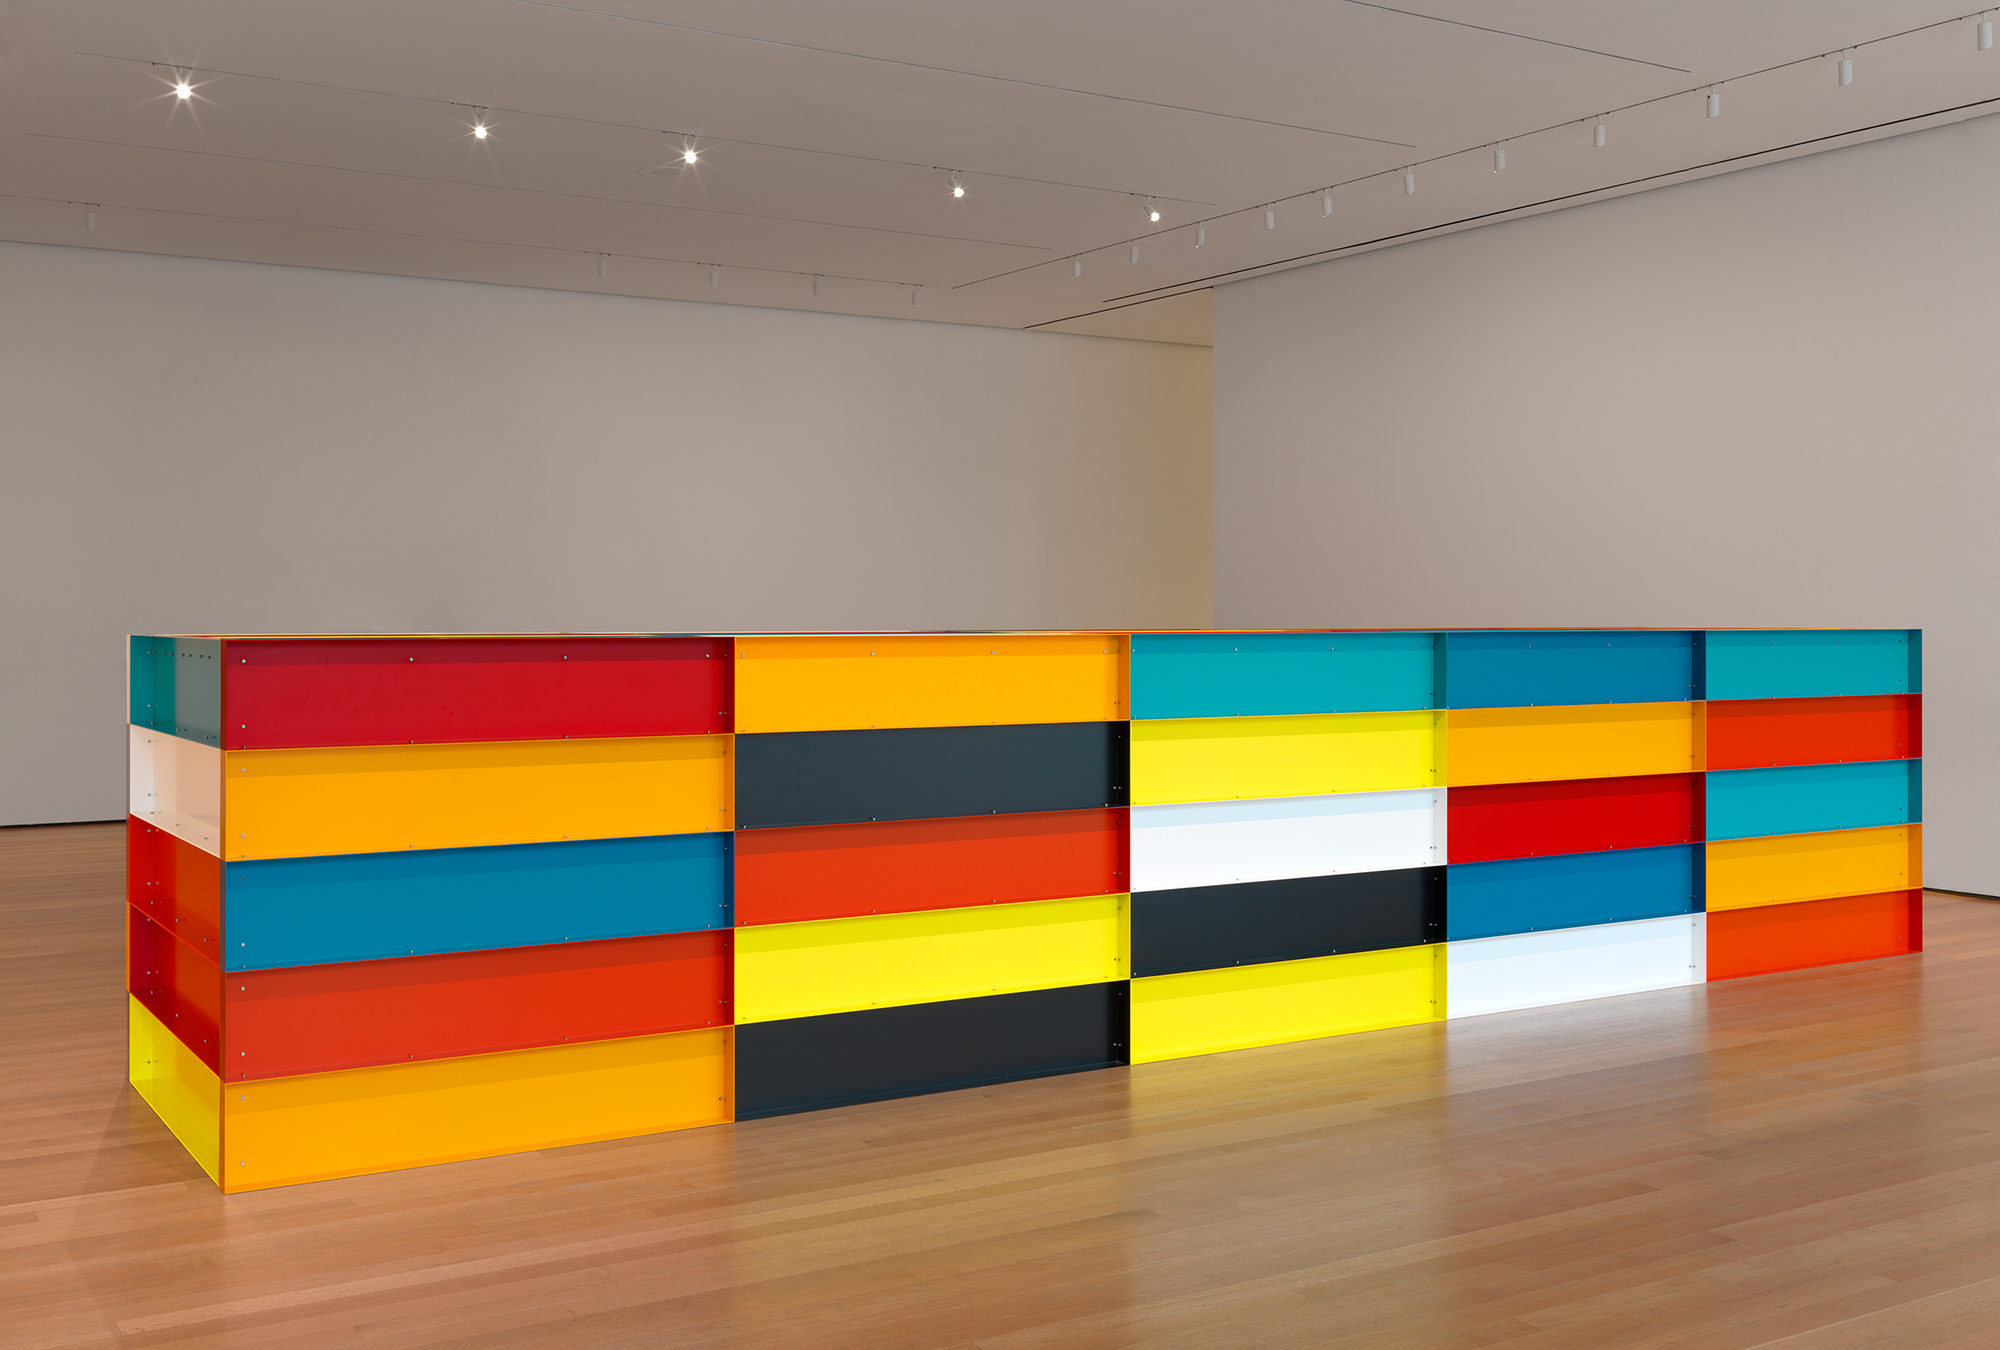 Donald Judd sculpture made of aluminum painted in different colors.